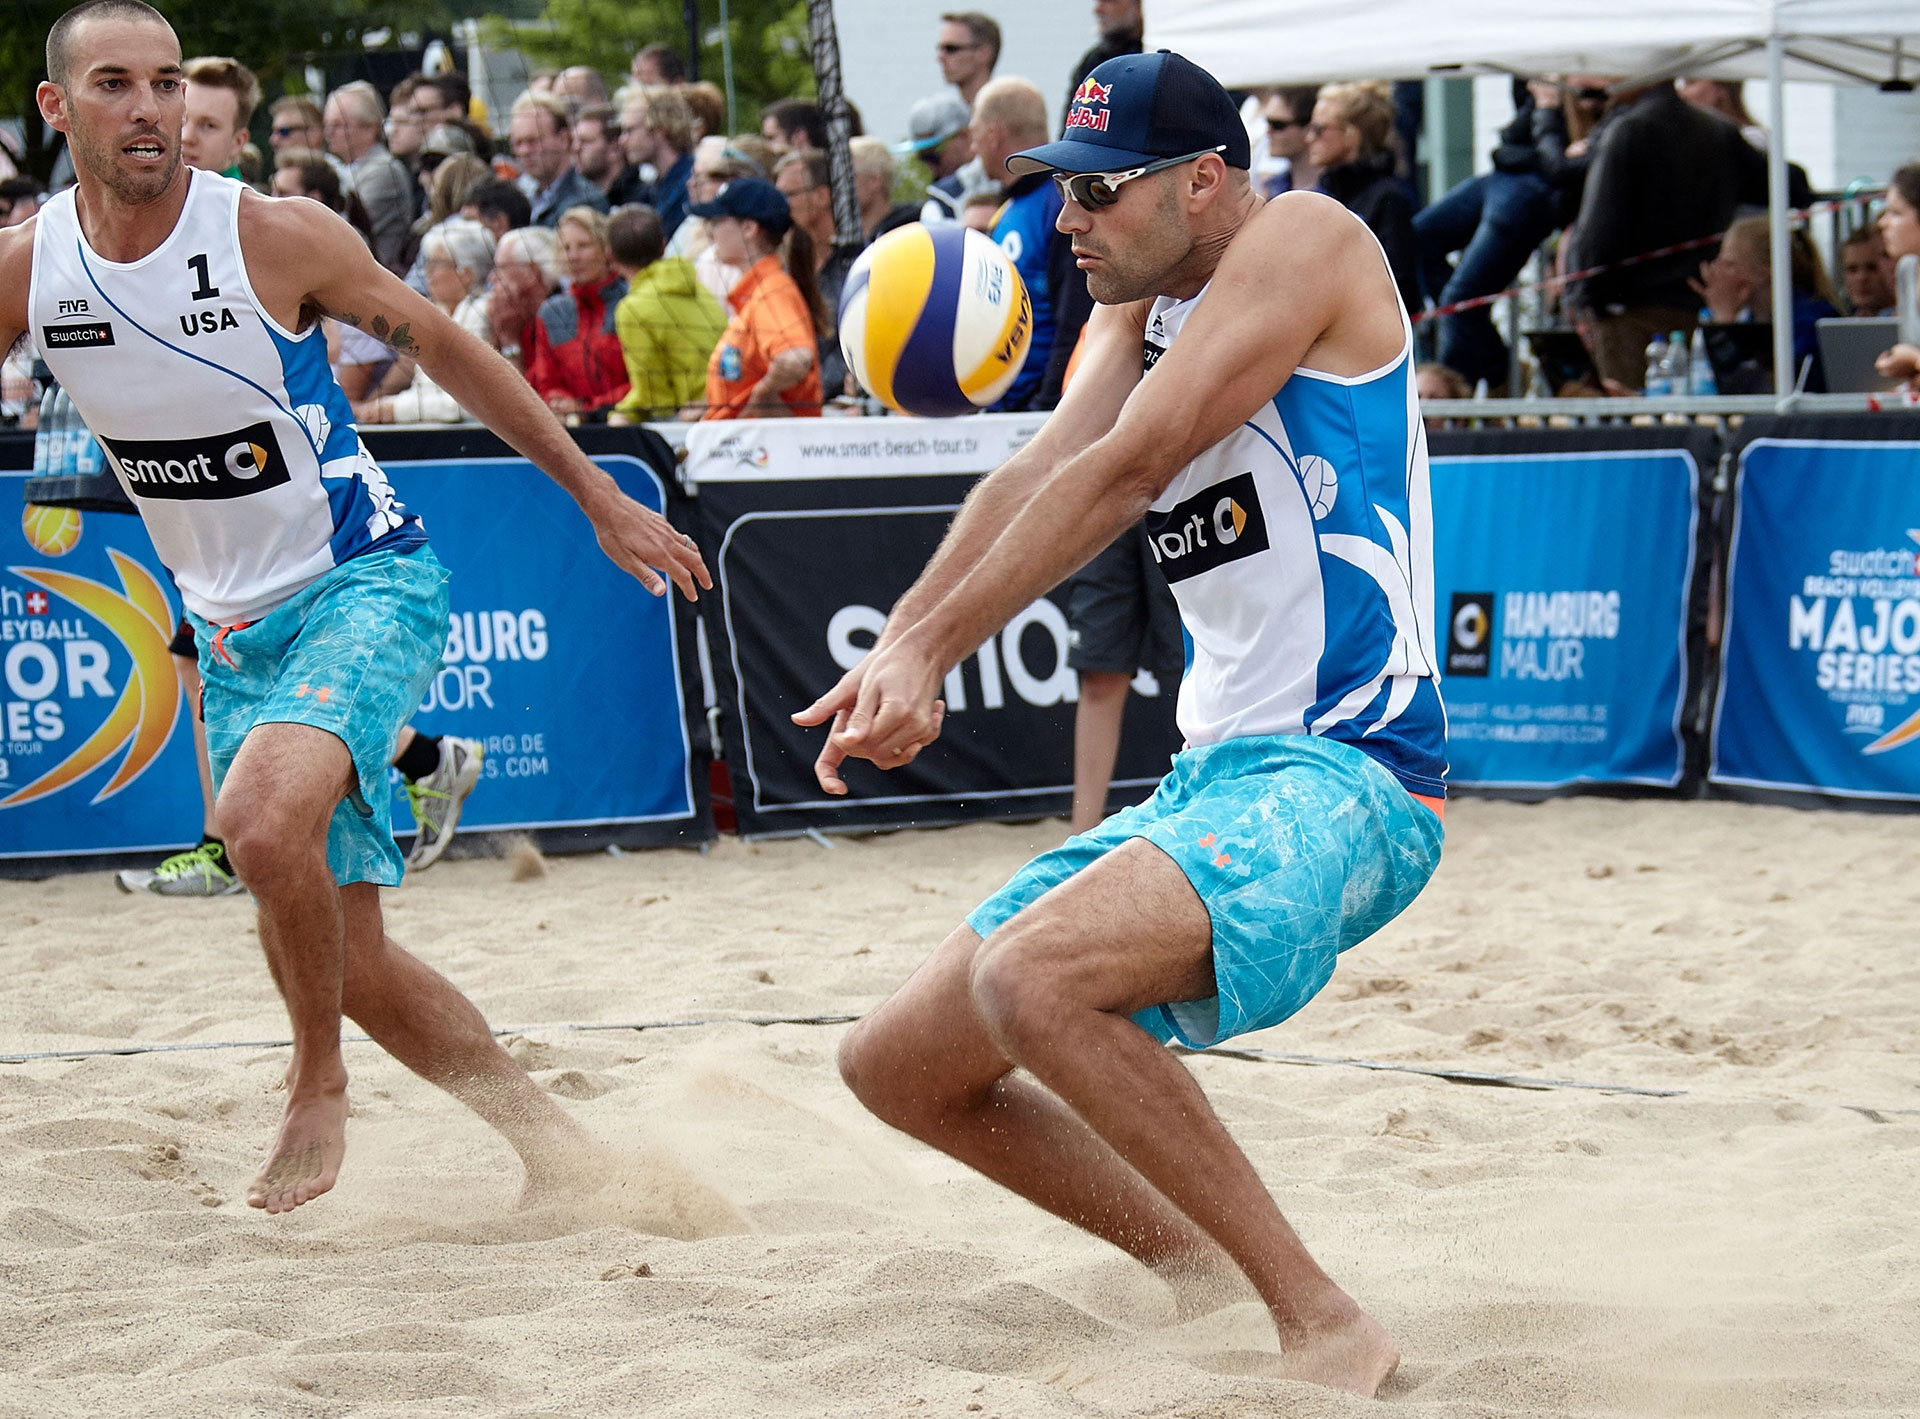 Phil Dalhausser and Nick Lucena are in Saturday's quarterfinals! Photocredit: Mike Ranz.